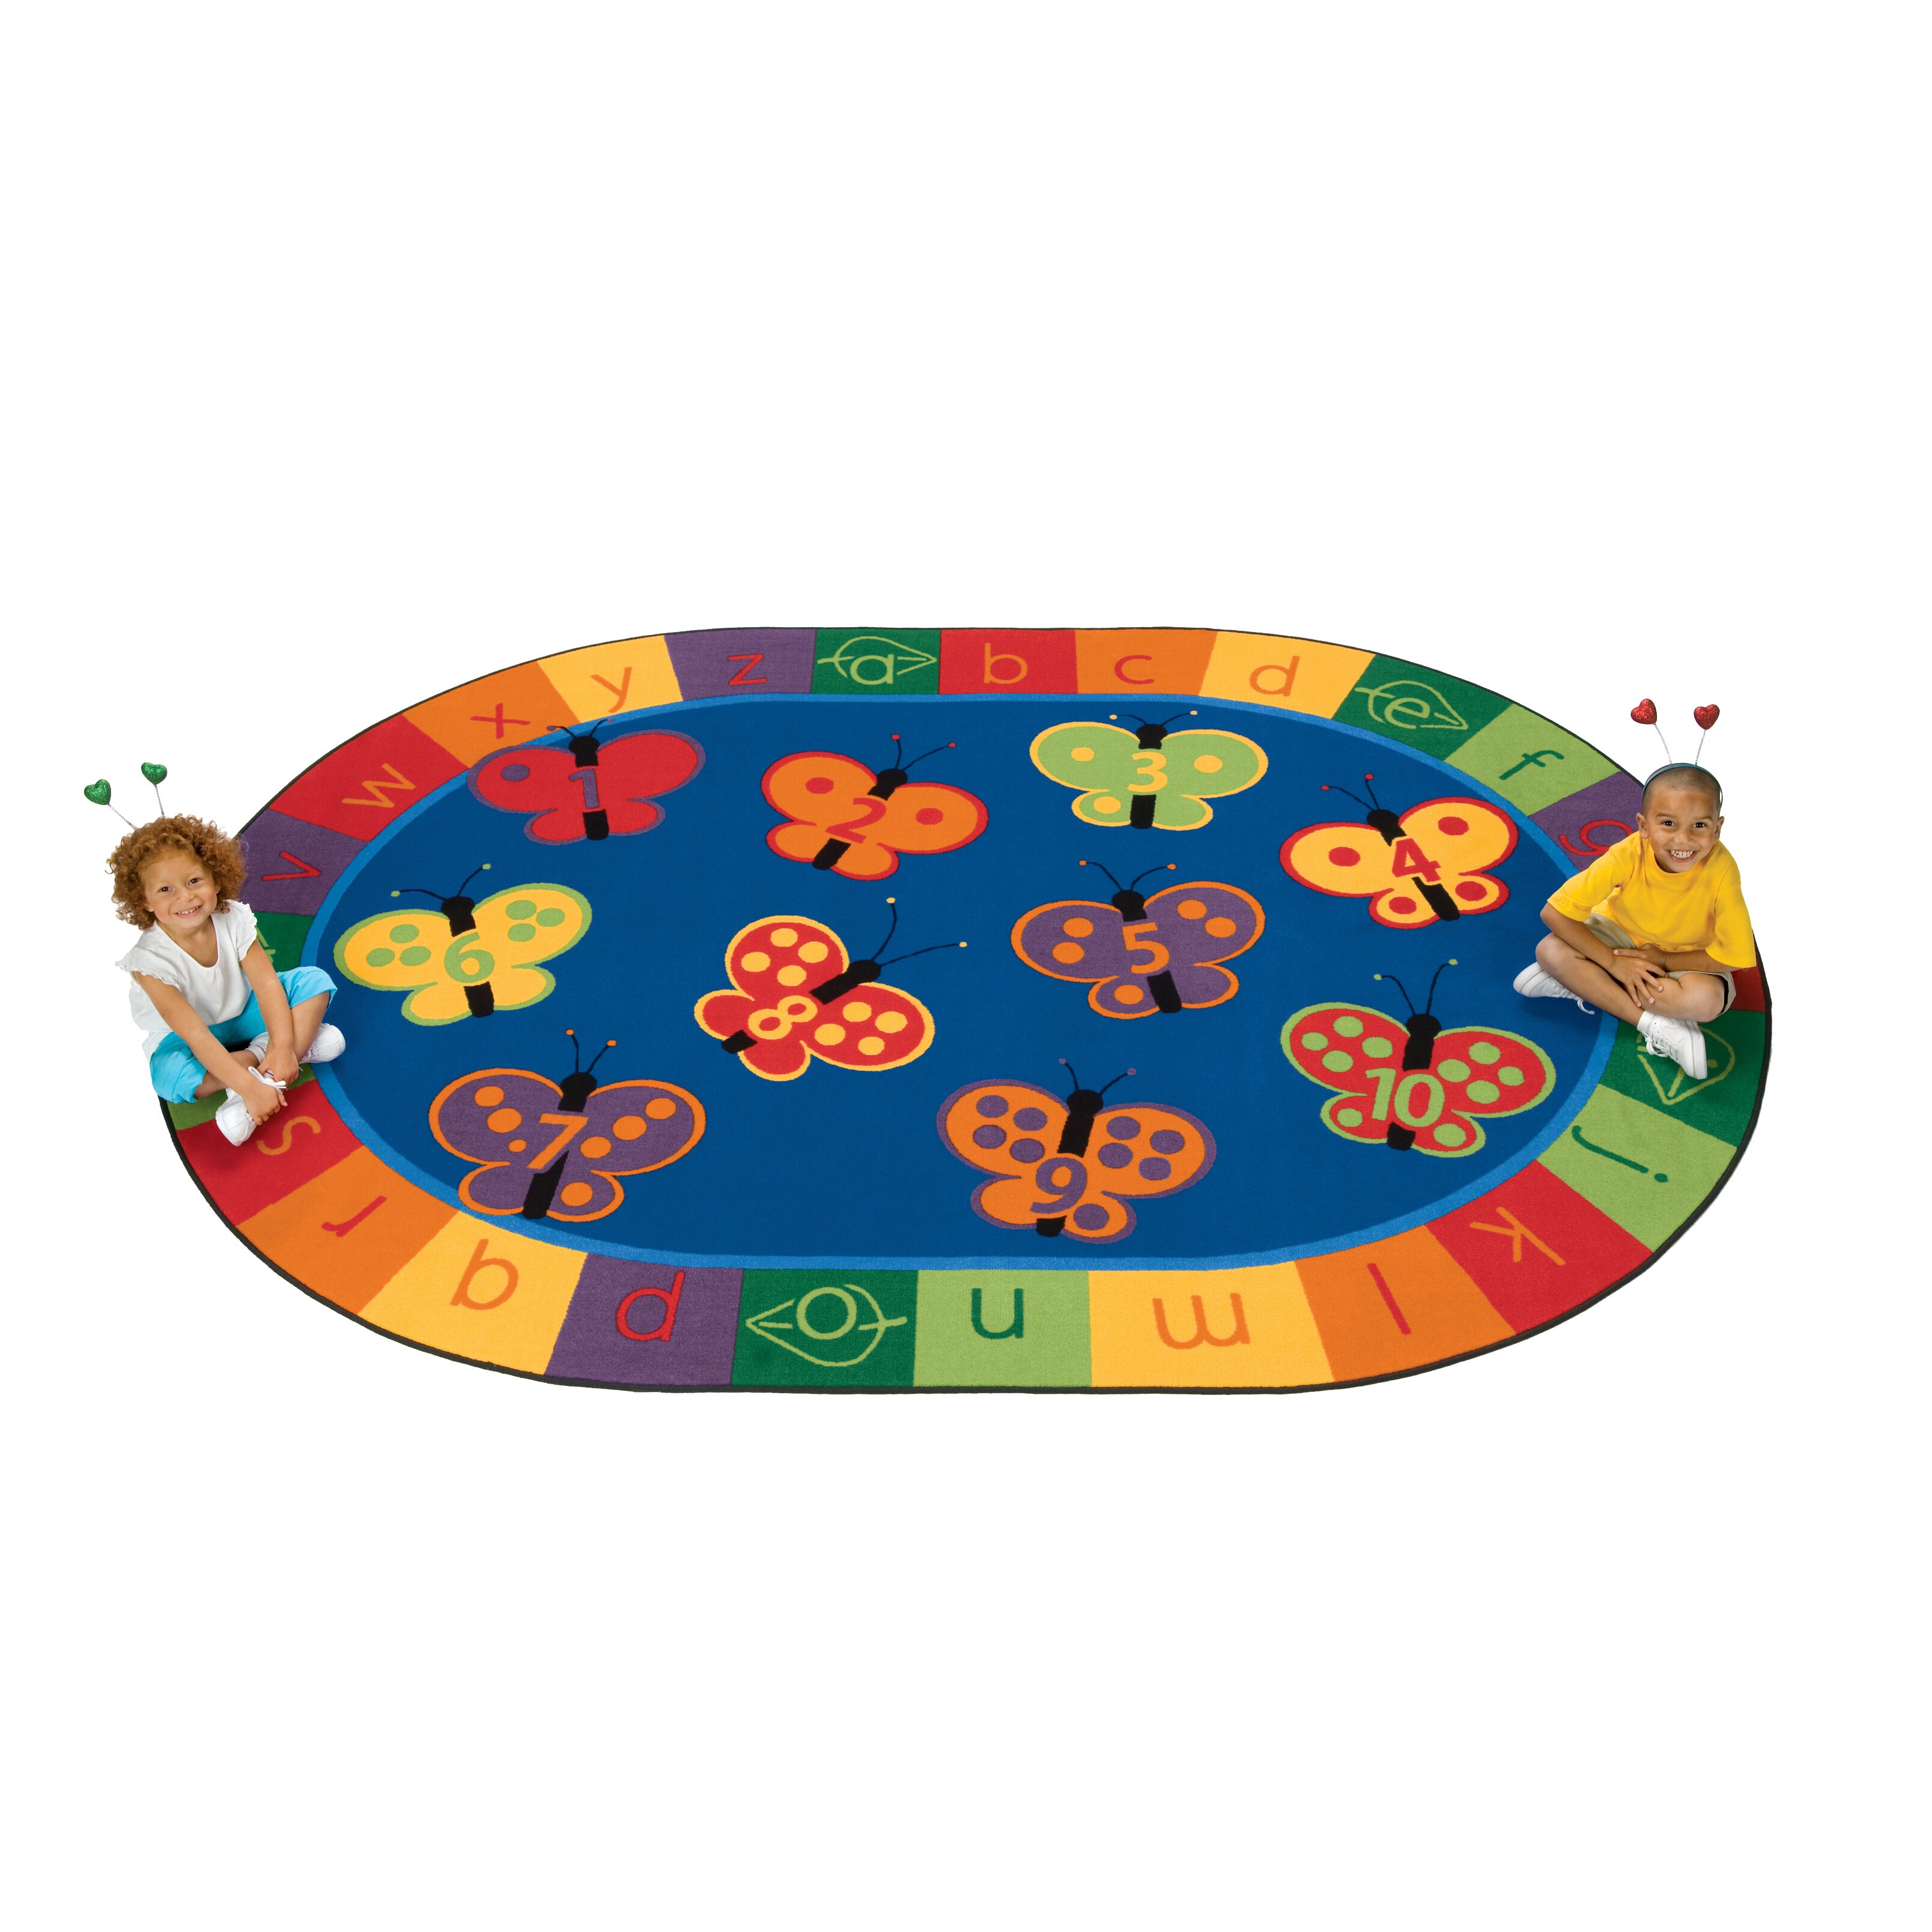 Carpets For Kids Literacy 123 ABC Butterfly Fun Kids Area